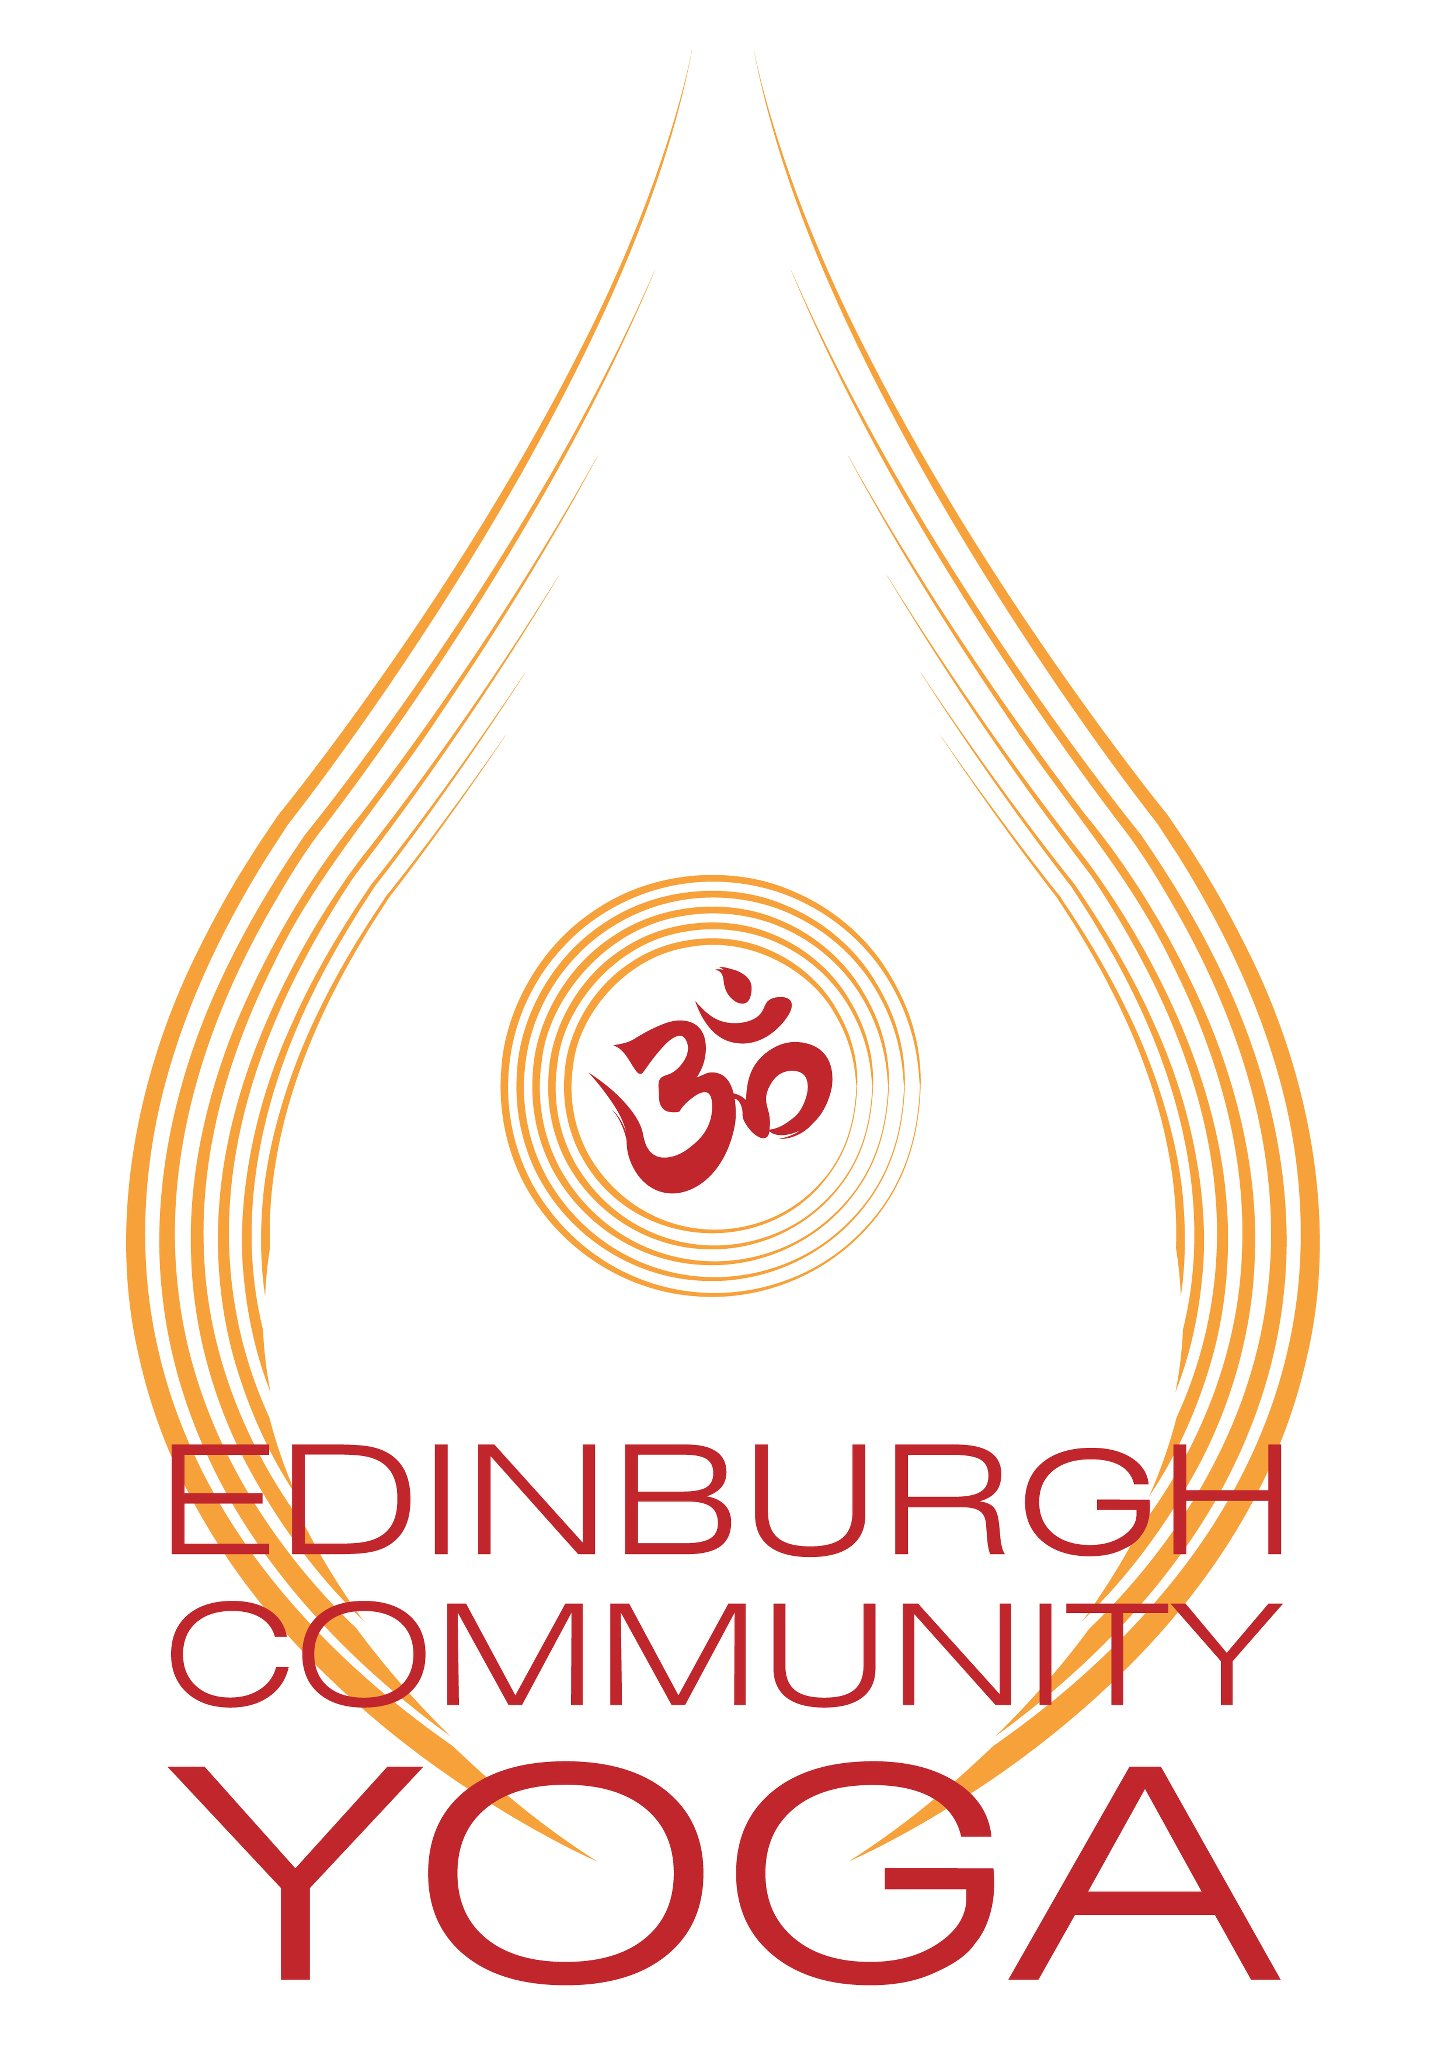 Because community matters. - Edinburgh Community Yoga is a not for profit organisation who believes that everyone deserves the benefits of yoga.ECY is one of the most established yoga outreach organisations in the country. Their vision encompases the yogic values of respect and compassion and the humanist ideal of unconditional positive regard.ECY is our chosen charity and we would like to donate £1 for every ticket sold as well as a couple of free tickets to the community members.Follow Edinburgh Community Yoga on Instagram or Facebook.